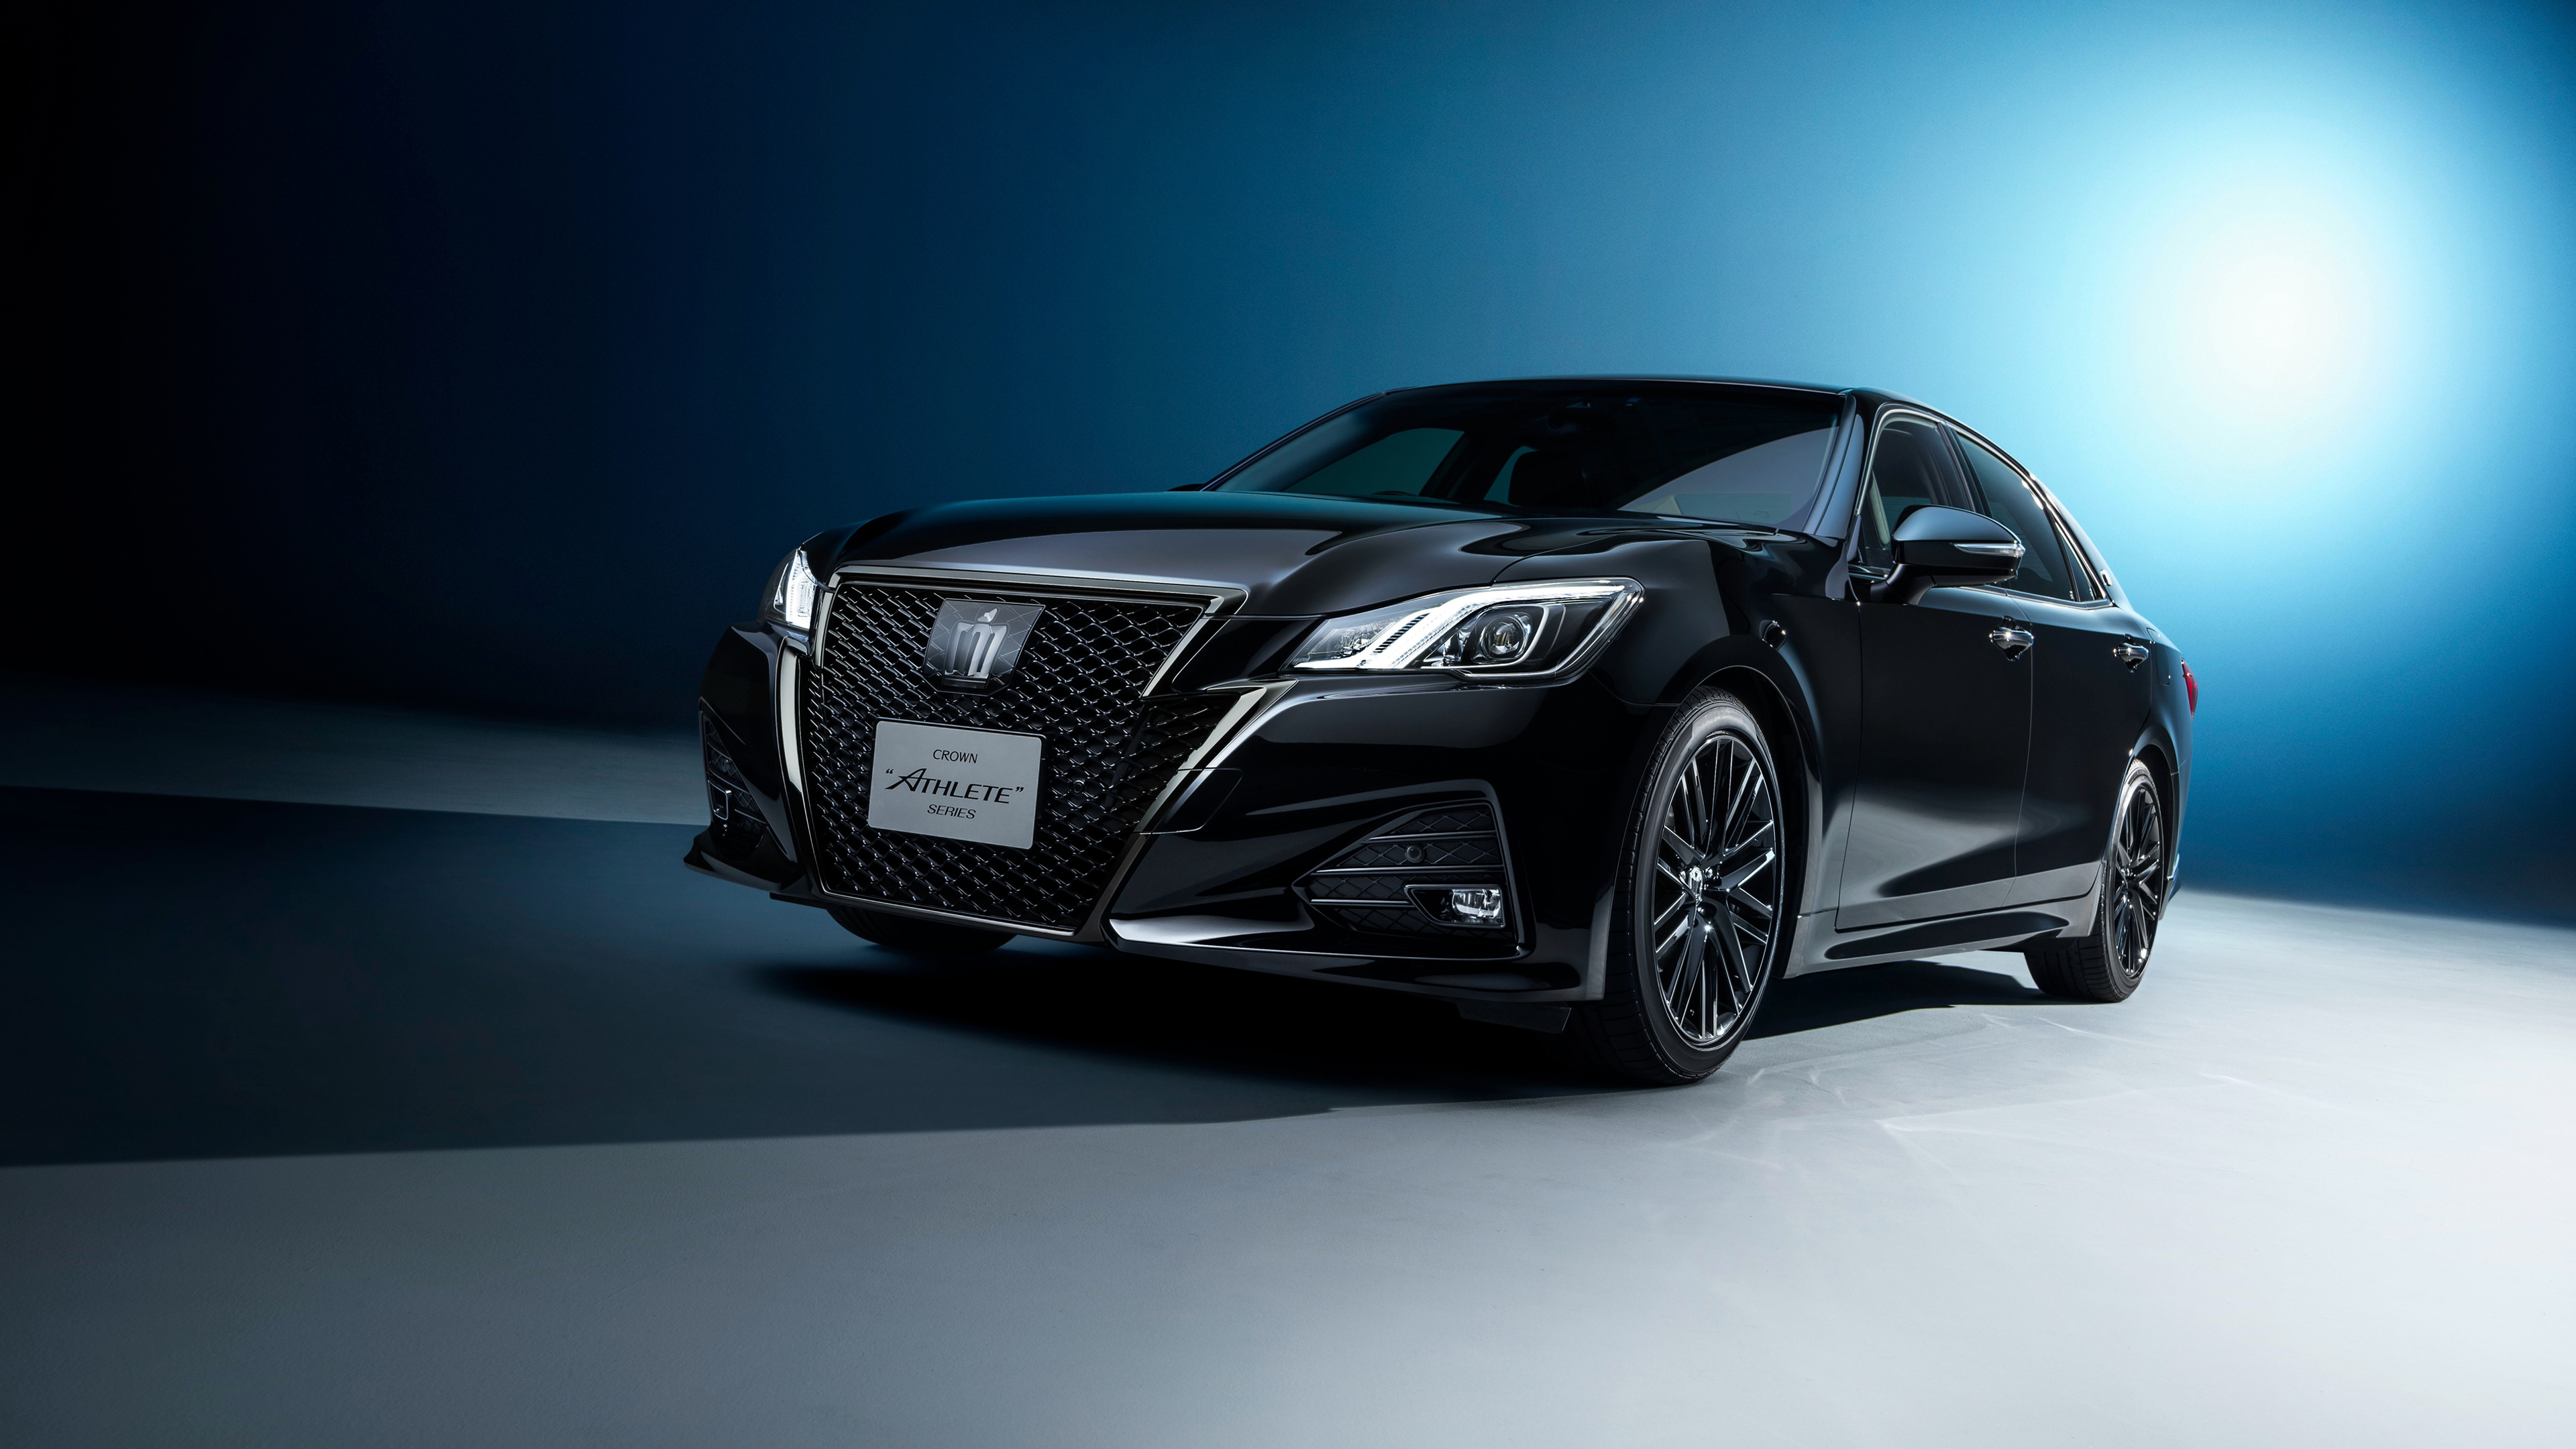 Crown Toyota 2018 >> 2017 Toyota Crown Hybrid Athlete ST J Frontier Limited 4K Wallpaper | HD Car Wallpapers | ID #8340